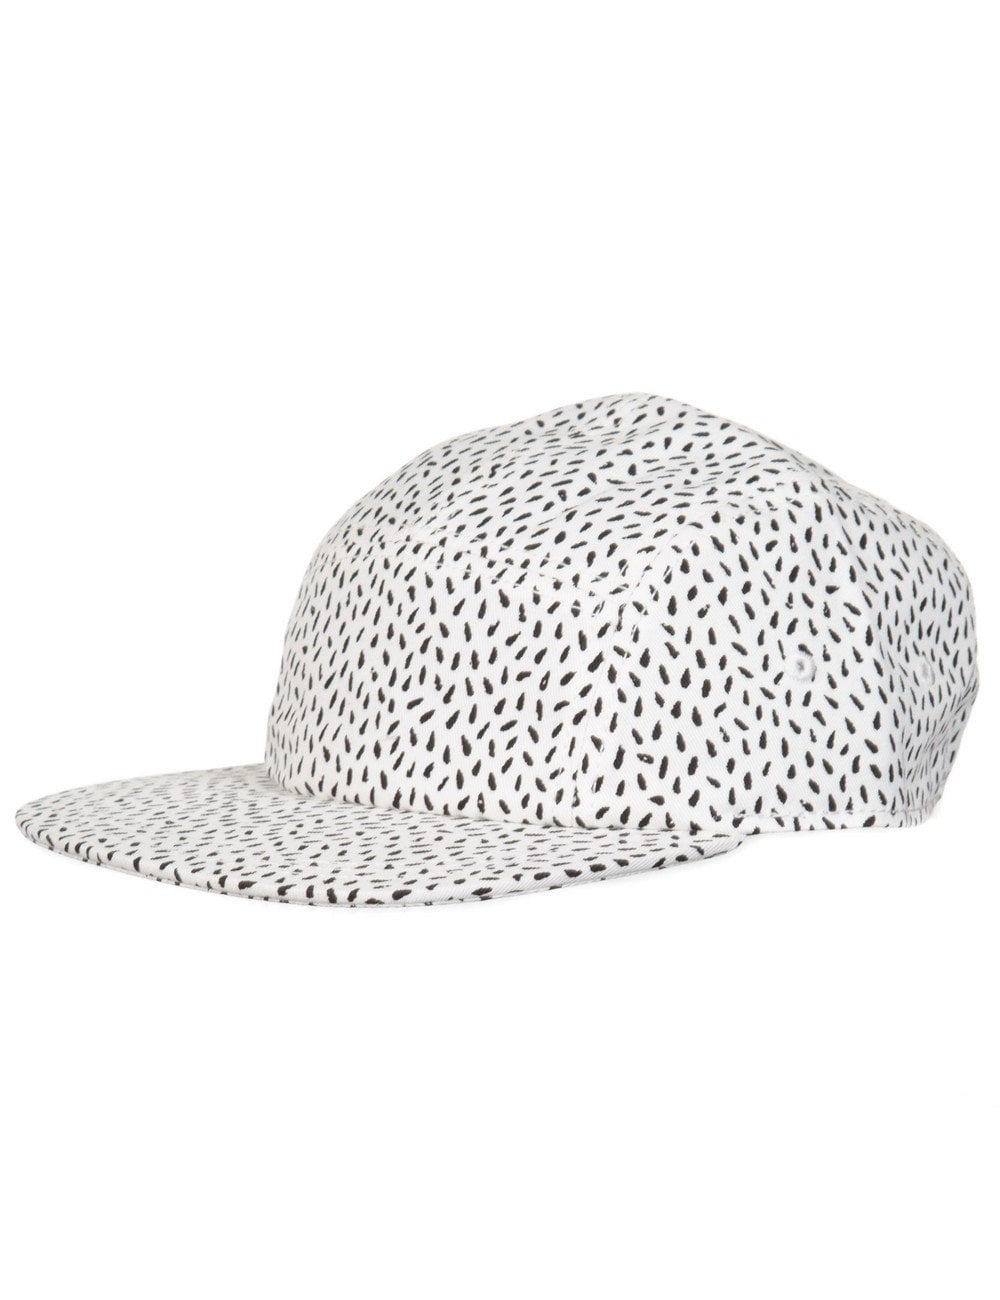 bb0b3adfc1f Lacoste Live 5 Panel Hat - Flour Black - Accessories from Fat Buddha ...